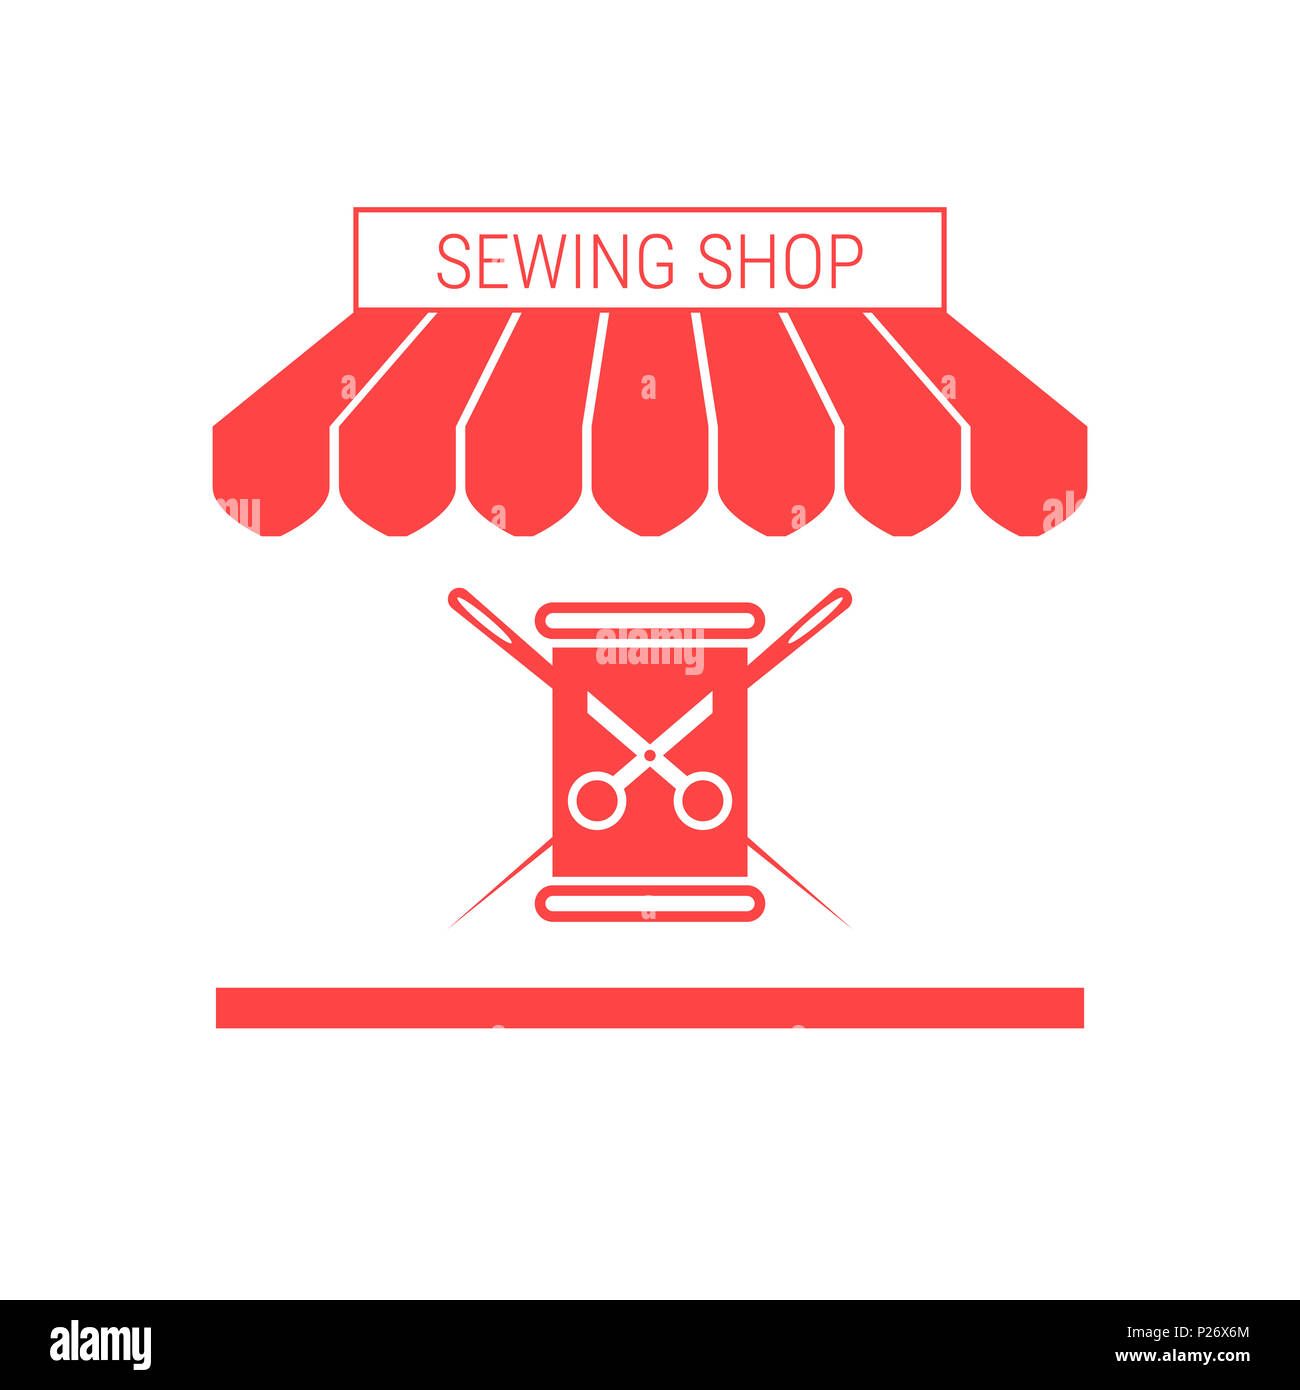 Sewing Shop Stock Photos & Sewing Shop Stock Images